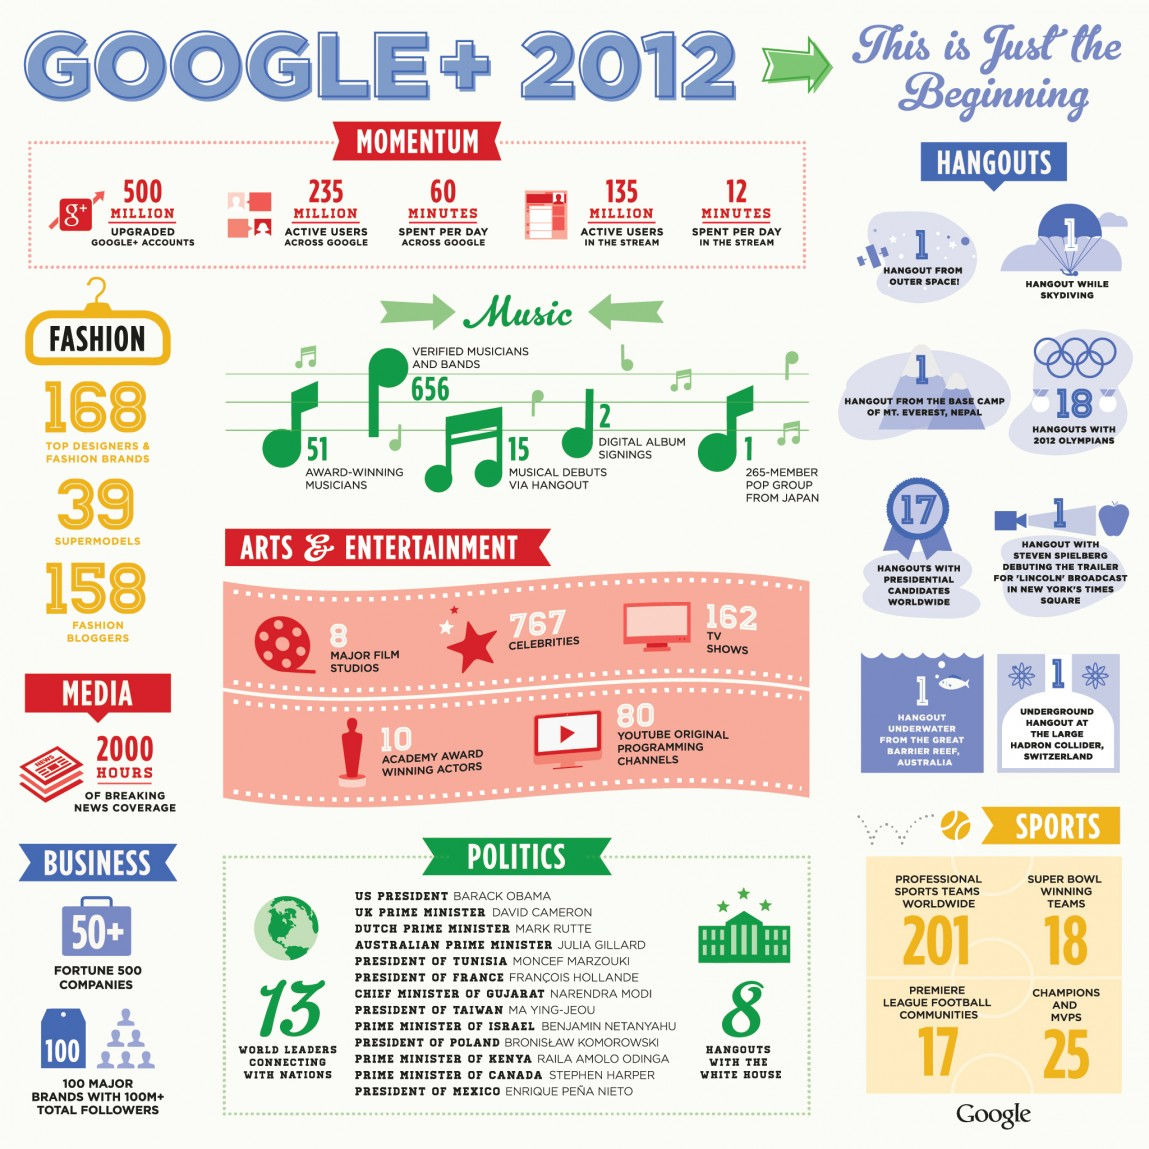 Google + 2012: This Is Only the Beginning